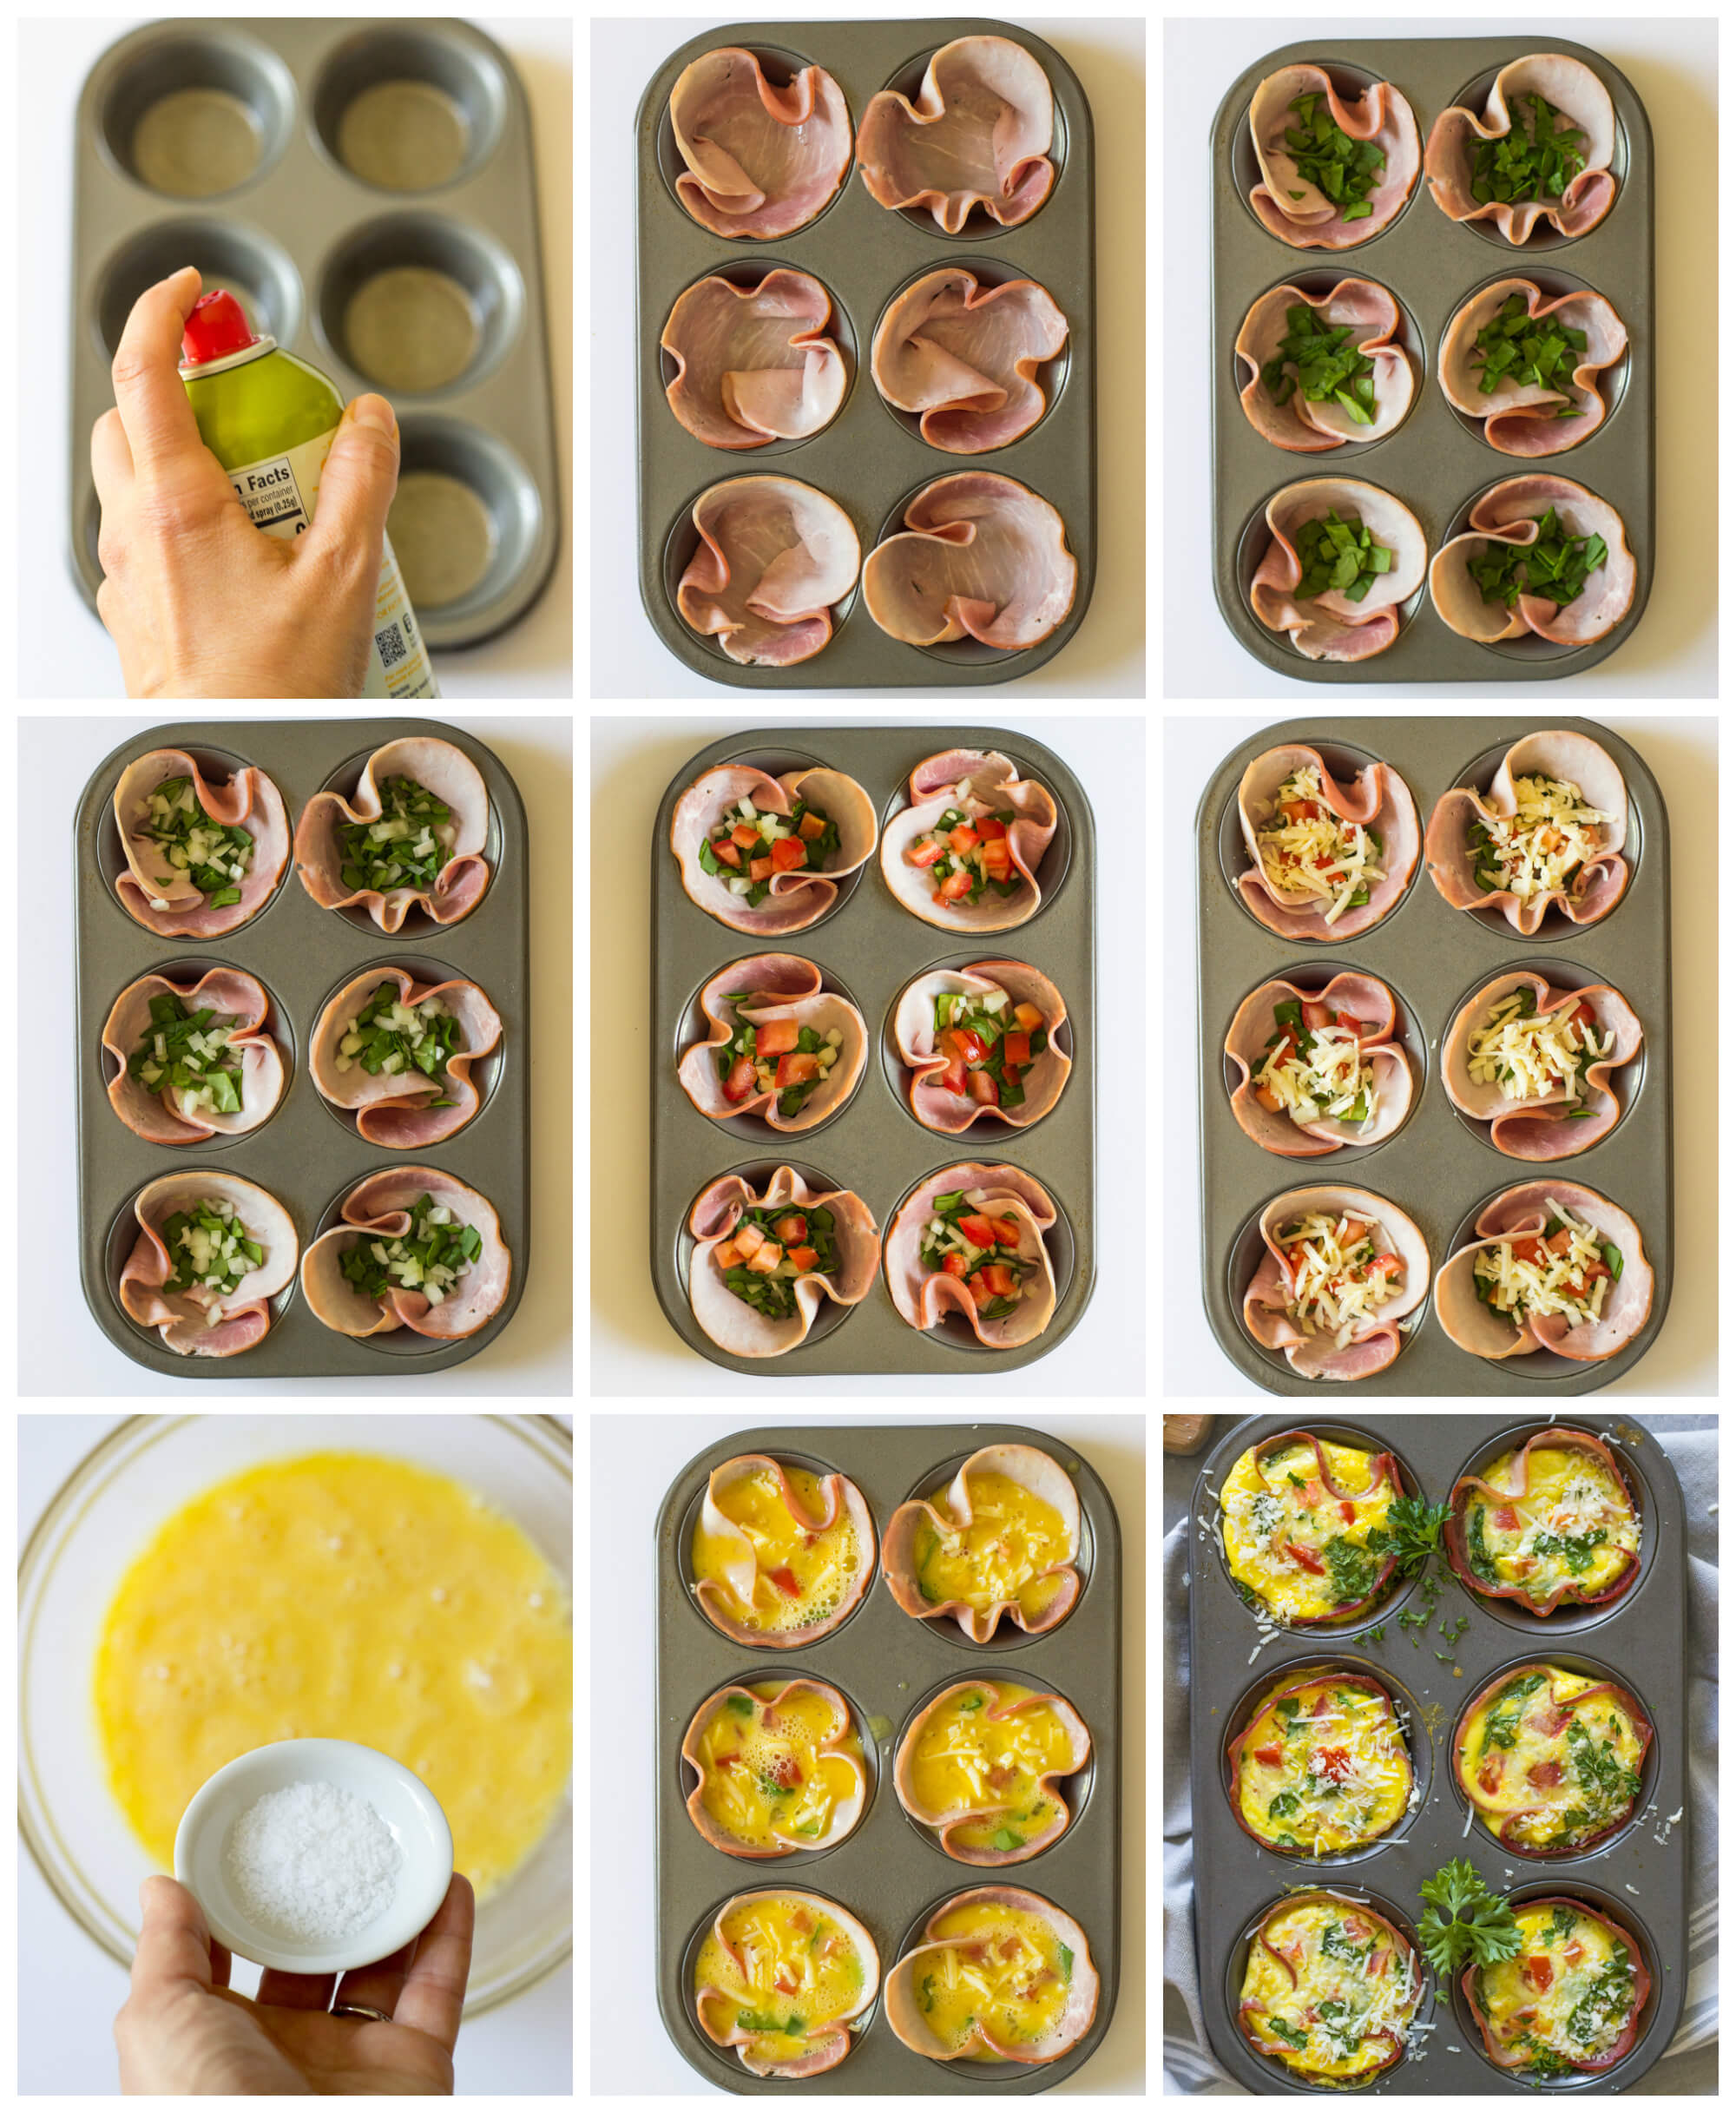 Easy Ham and Egg Muffins - only 6 simple ingredients and these egg muffins practically make themselves! So good with all the veggies and white cheddar cheese | littlebroken.com @littlebroken